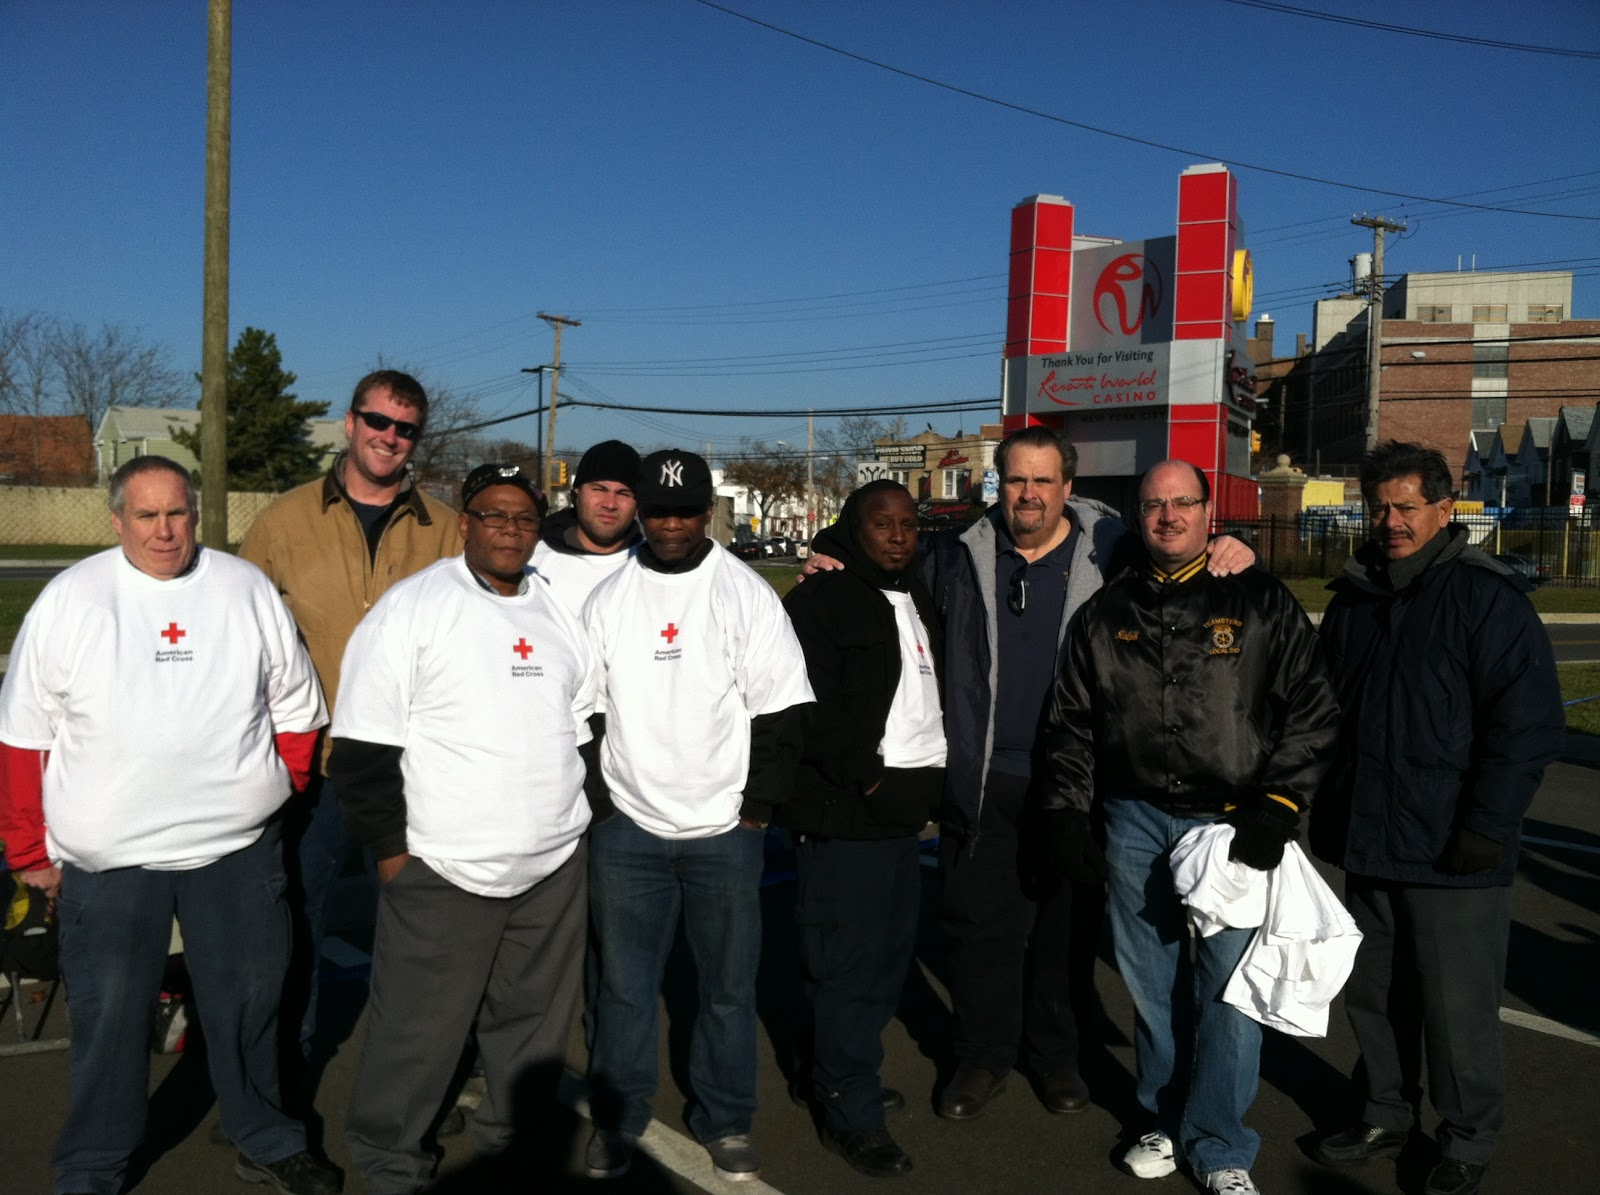 Teamster Nation: Sandy relief: Teamsters blanket NY region